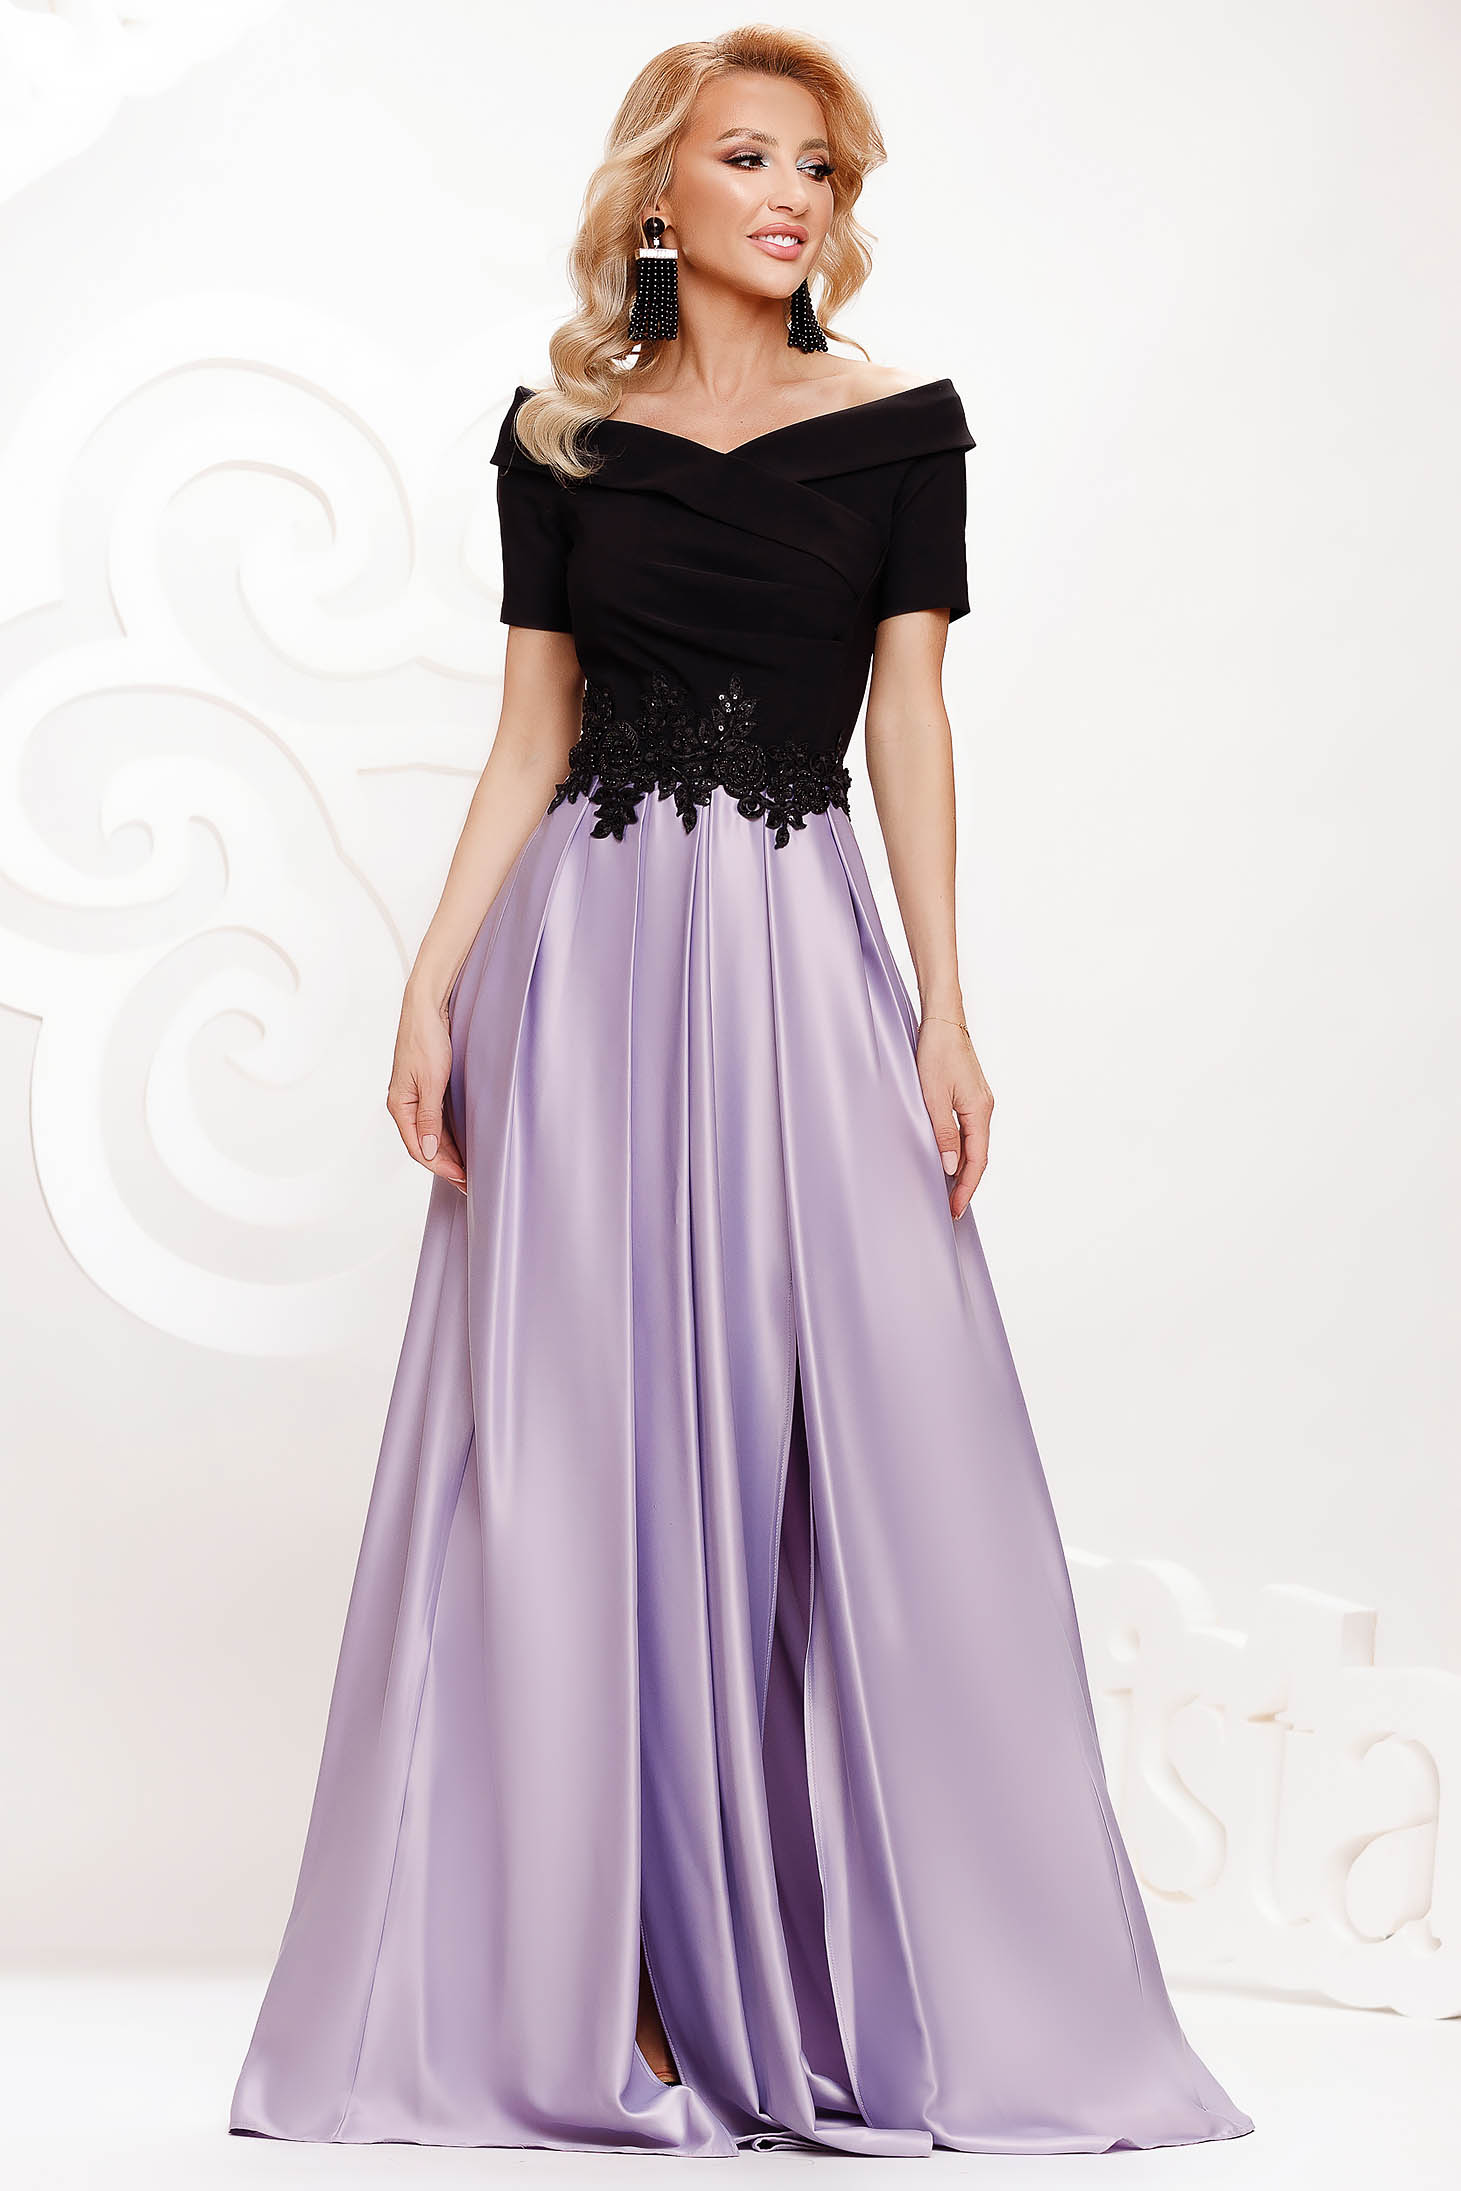 Lila dress from satin cloche occasional slit on the shoulders with embellished accessories